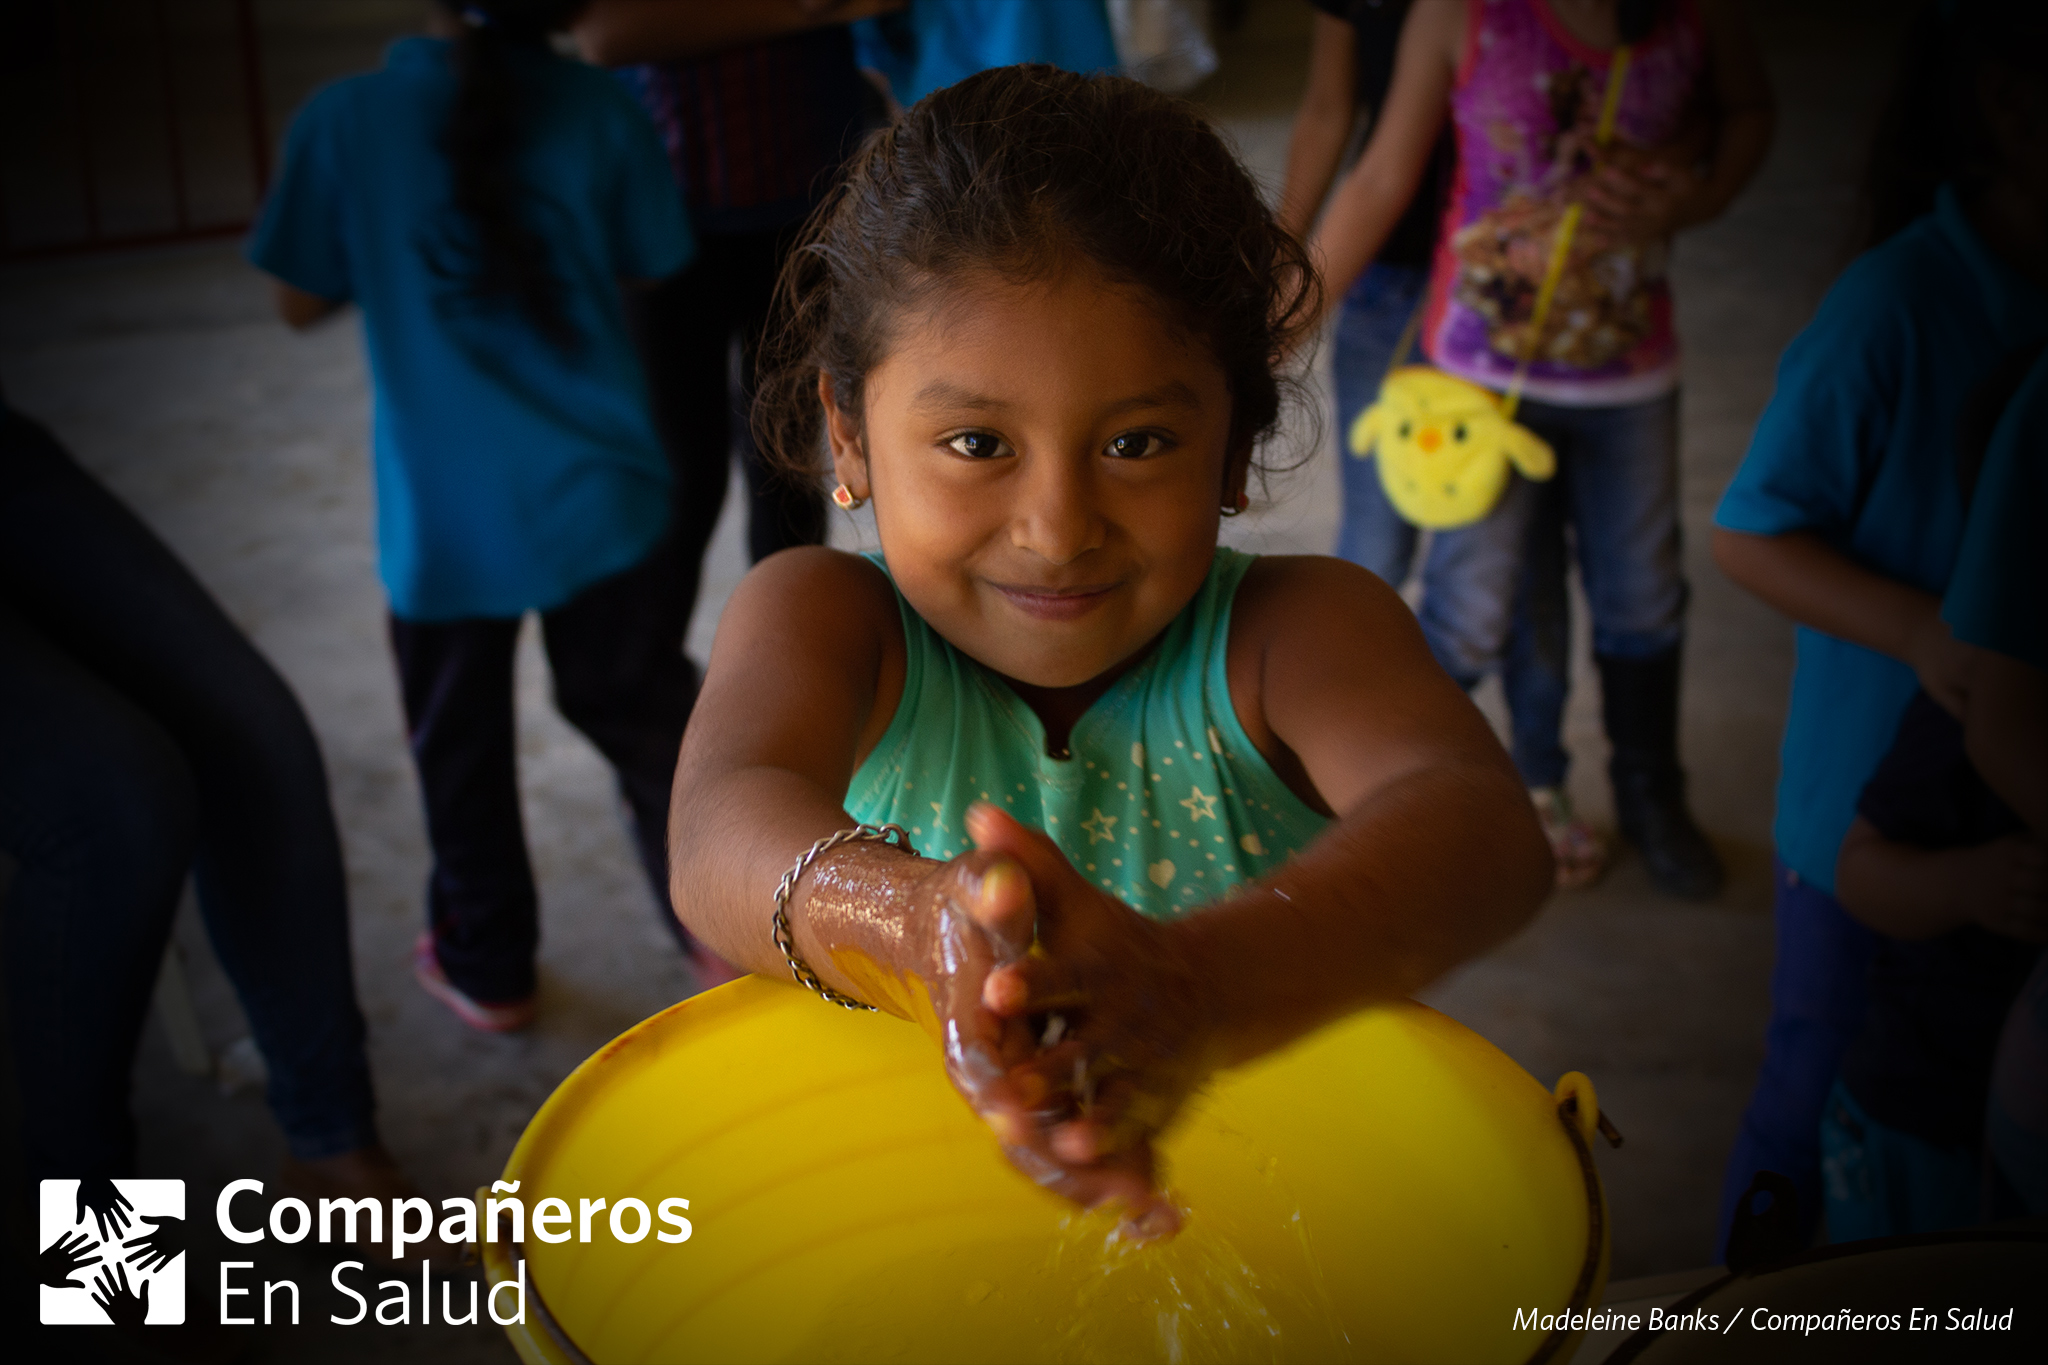 Each year, there are nearly 1.7 billion cases of childhood diarrheal disease; globally, it is one of the top 3 leading causes of death in children under five years old. Fortunately, in Chiapas, the last decade has seen a more than 40% decrease in the death rate for children under five due to diarrheal disease. Even so, the rate is still nearly 3 times the national rate.  Volunteers from Compañeros En Salud were part of a collaborative team of several organizations that held a Health Fair, an annual event for the children of Jaltenango de la Paz where our office is located. This year, the team taught 150 students on topics of hygiene, parasites, serum and hydration to help in the prevention and treatment of diarrheal diseases.   Photo: At the Health Fair, volunteers from Partners in Health held a workshop on how to wash their hands and food, in a hygienic way, to avoid parasites.    Read more